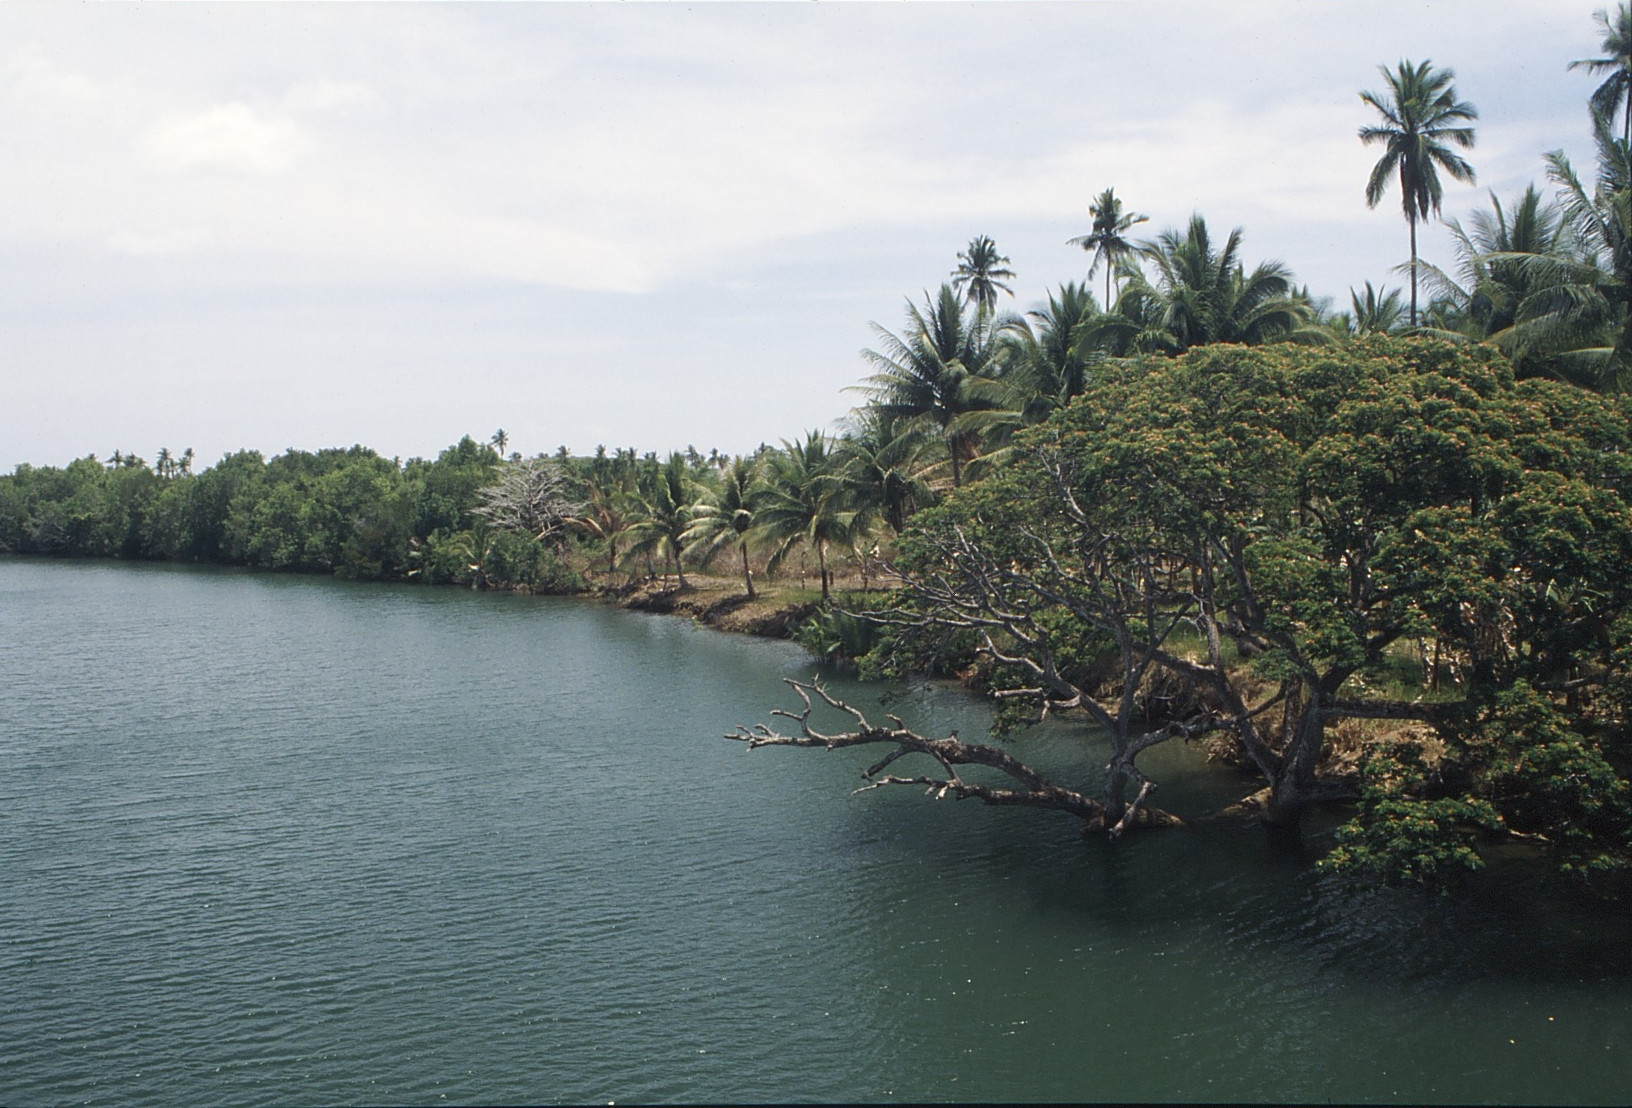 File:Palawan  River Bank.jpg